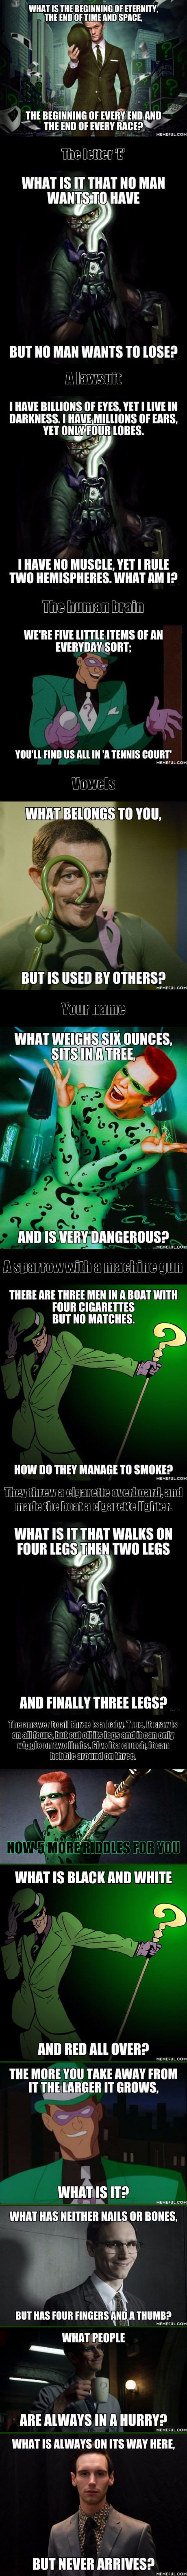 14 riddles from the Riddler, can you solve them?